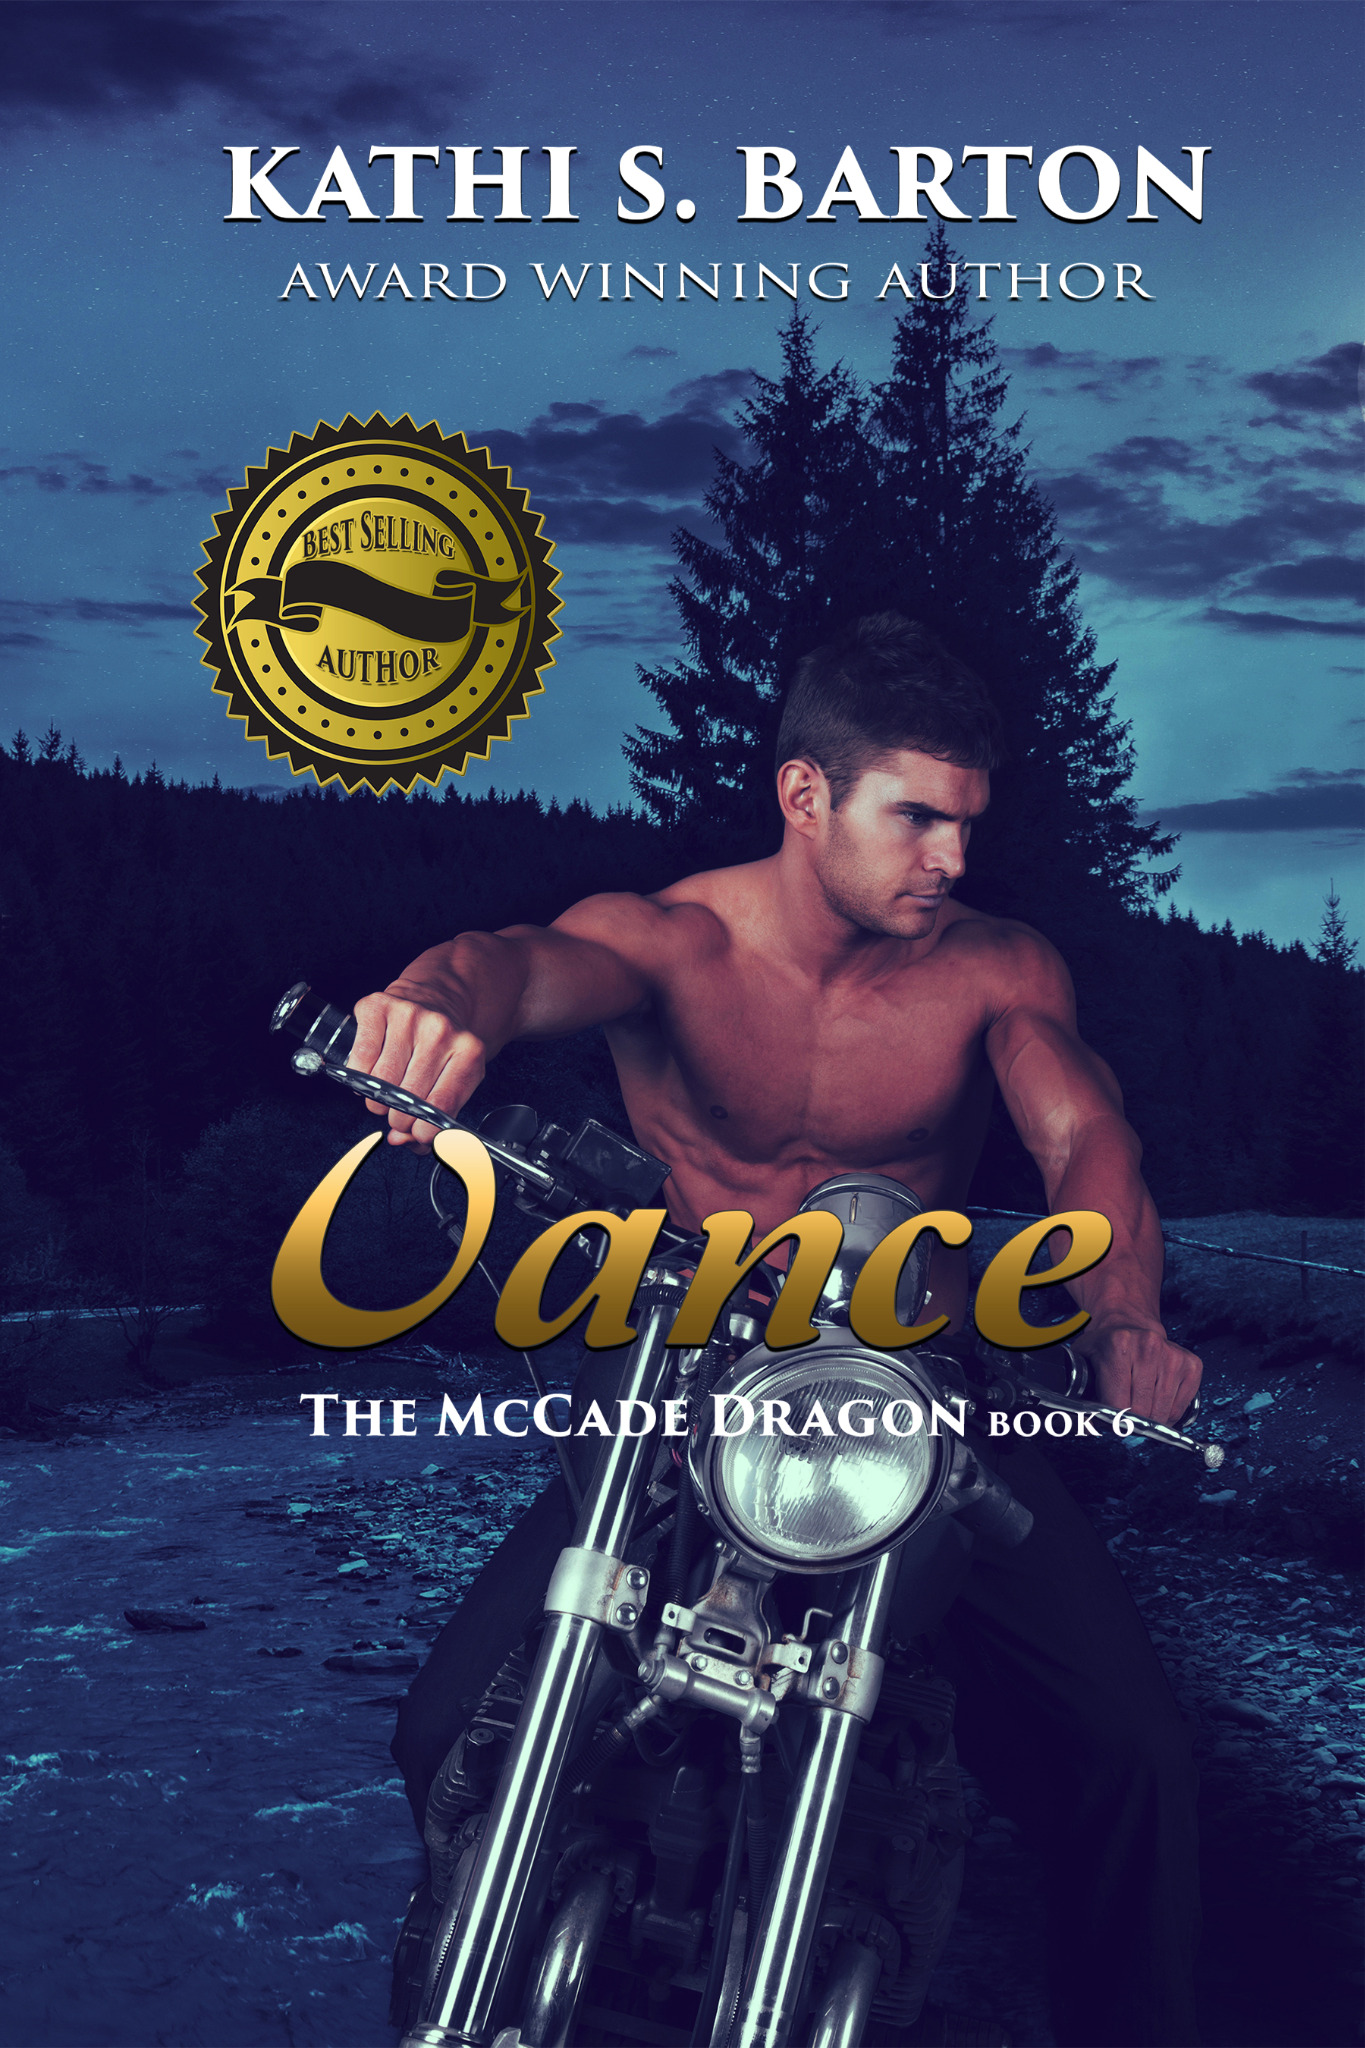 Vance - The McCade Dragon Book 6